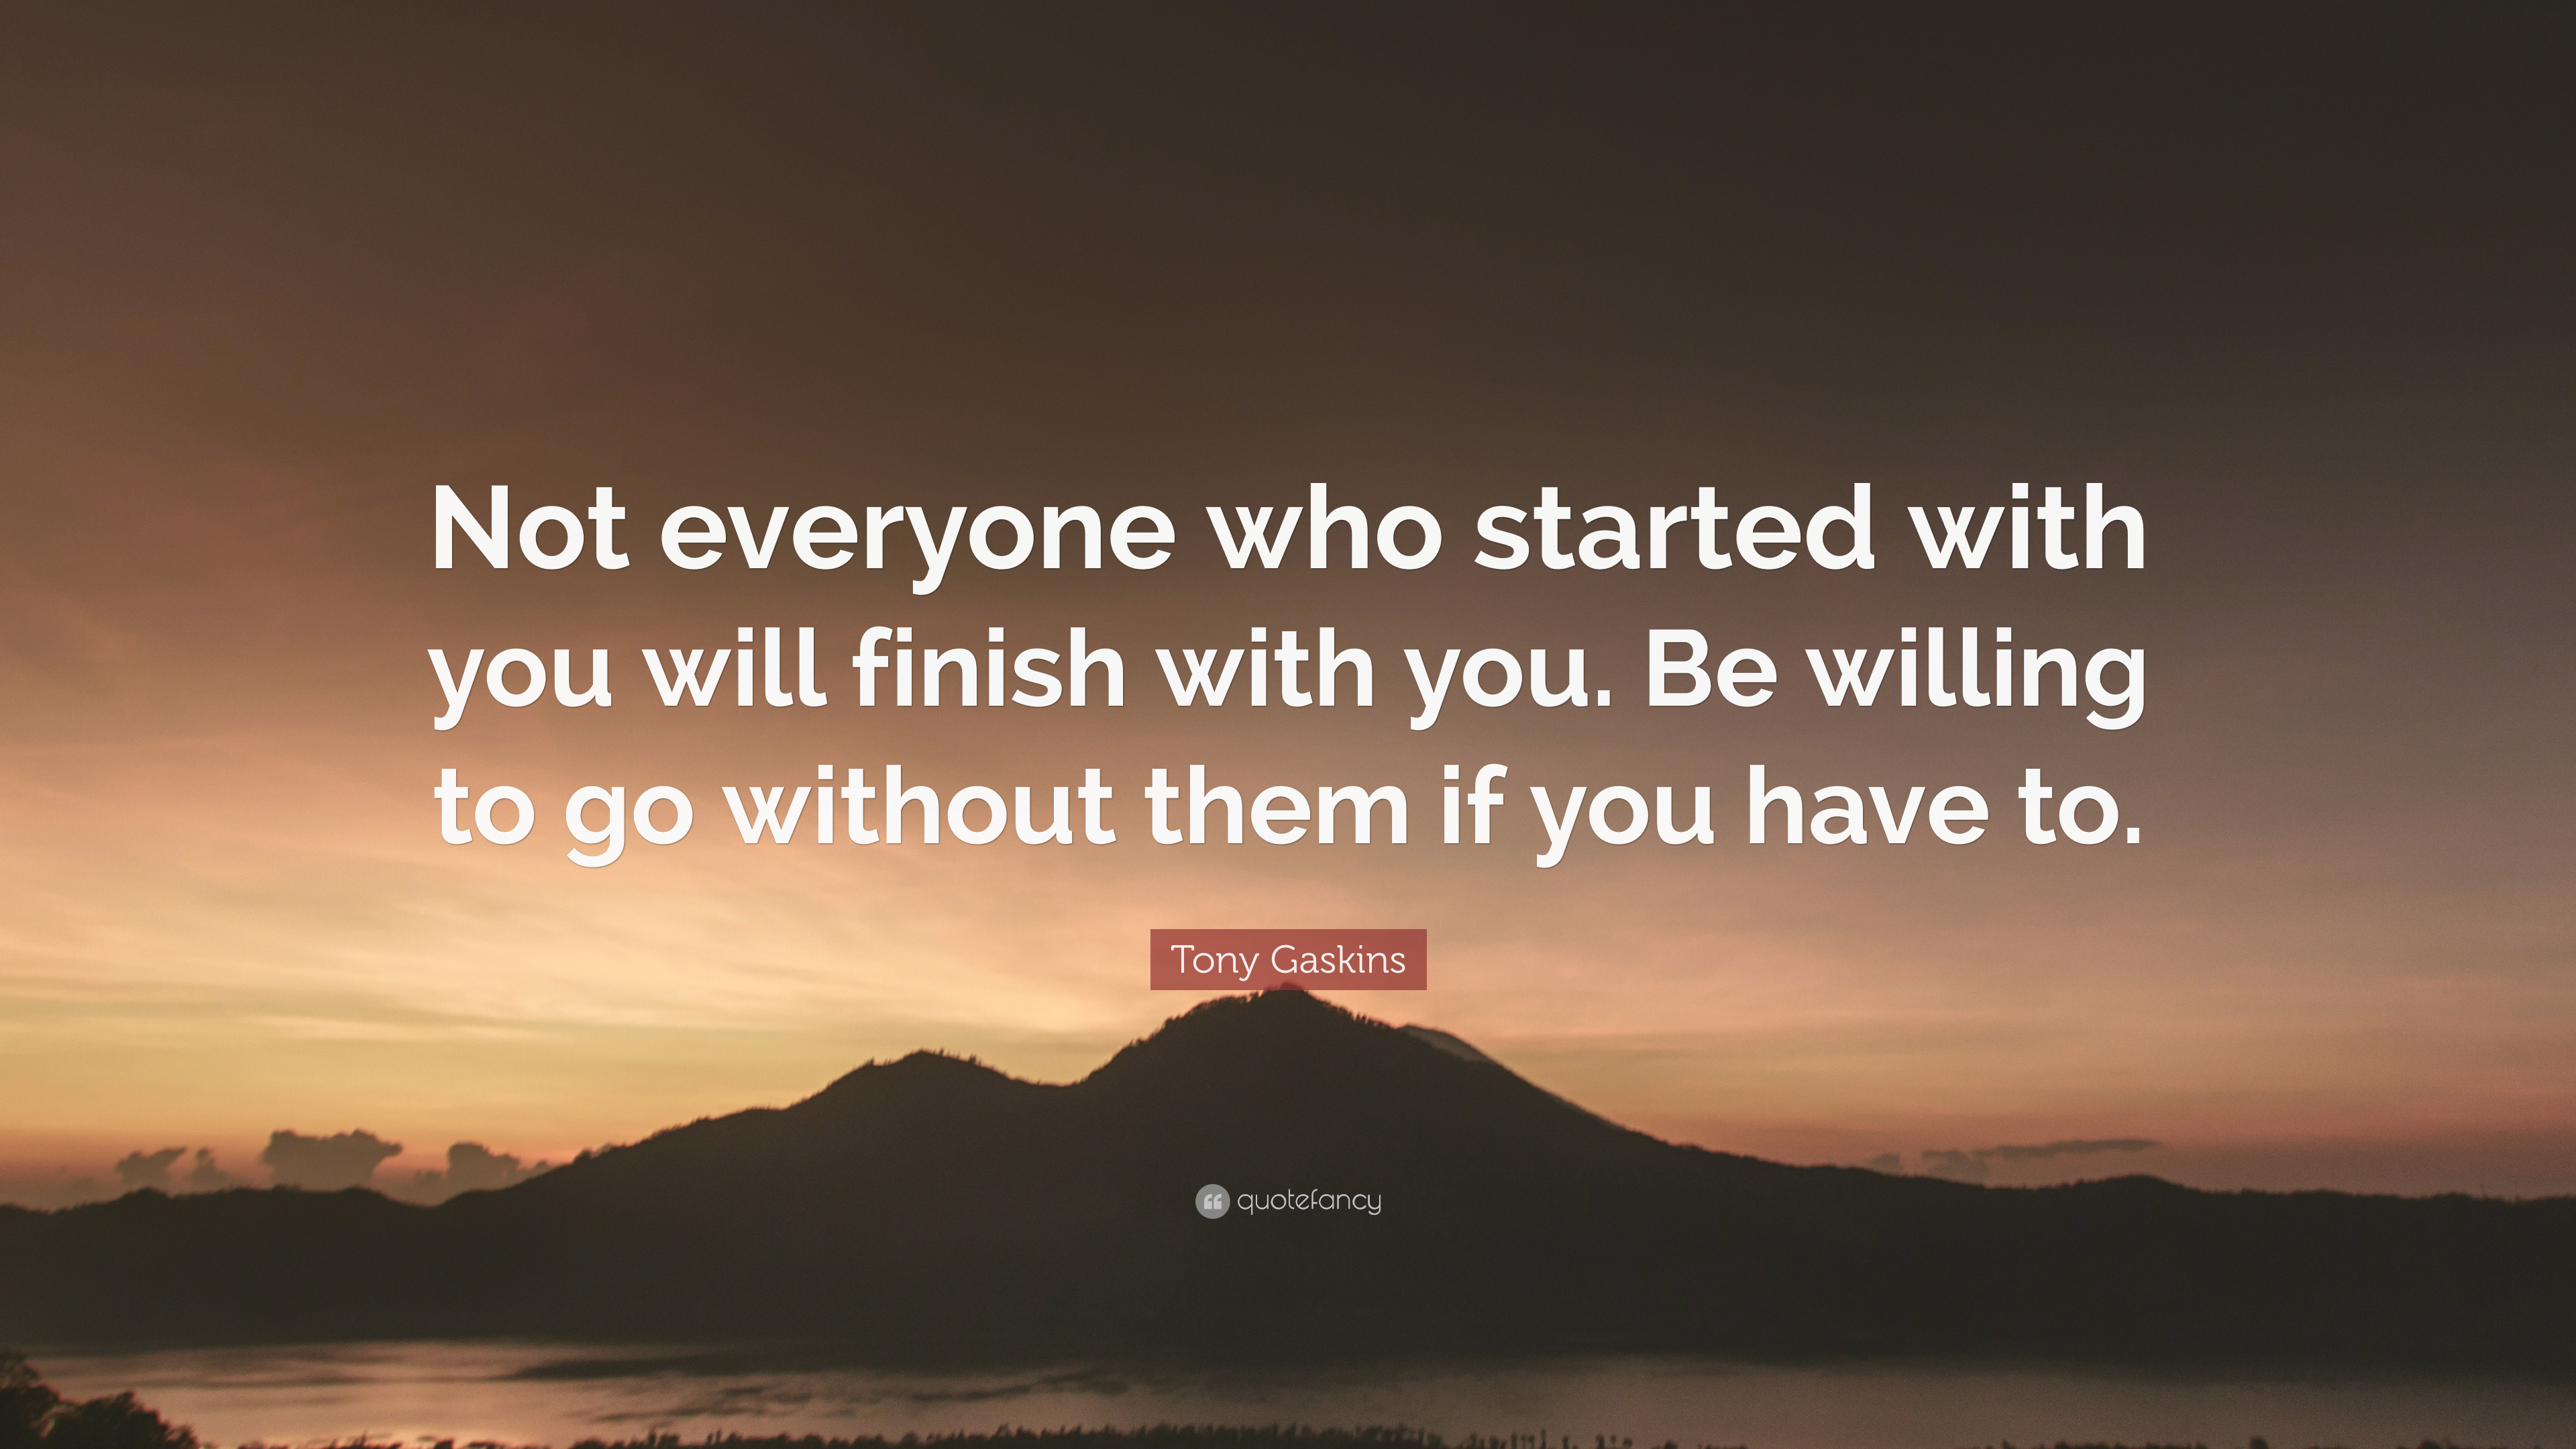 Tony Gaskins Quote: Not everyone who started with you